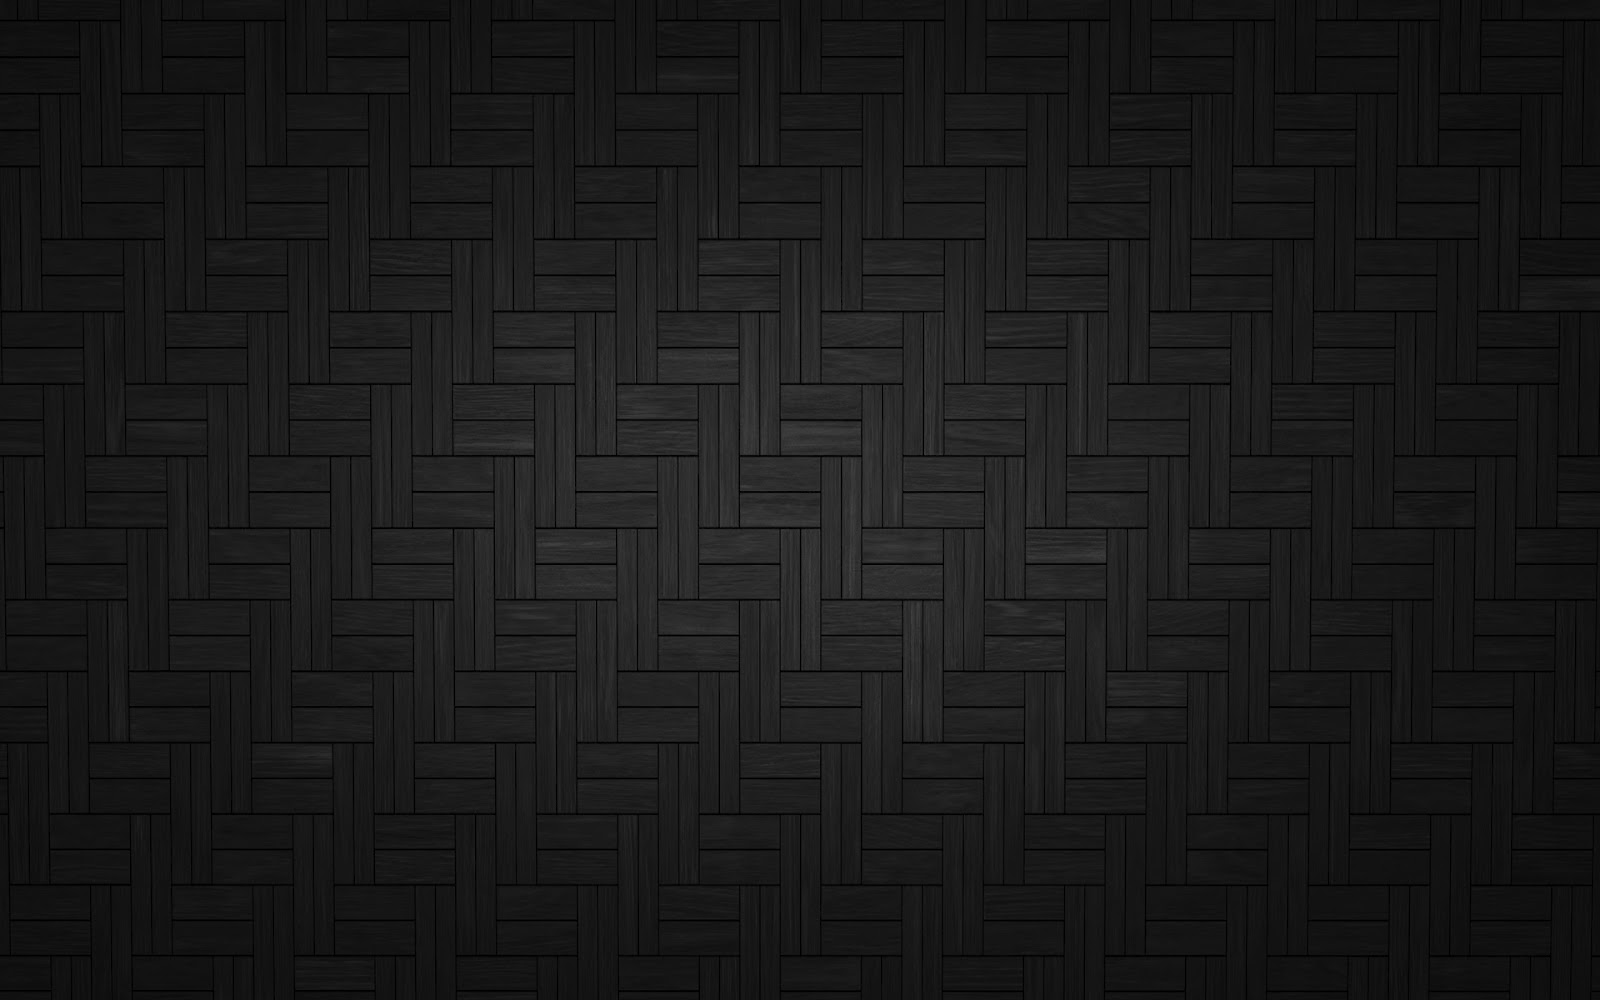 Black Color Hd Wallpapers on 2013 09 01 Archive